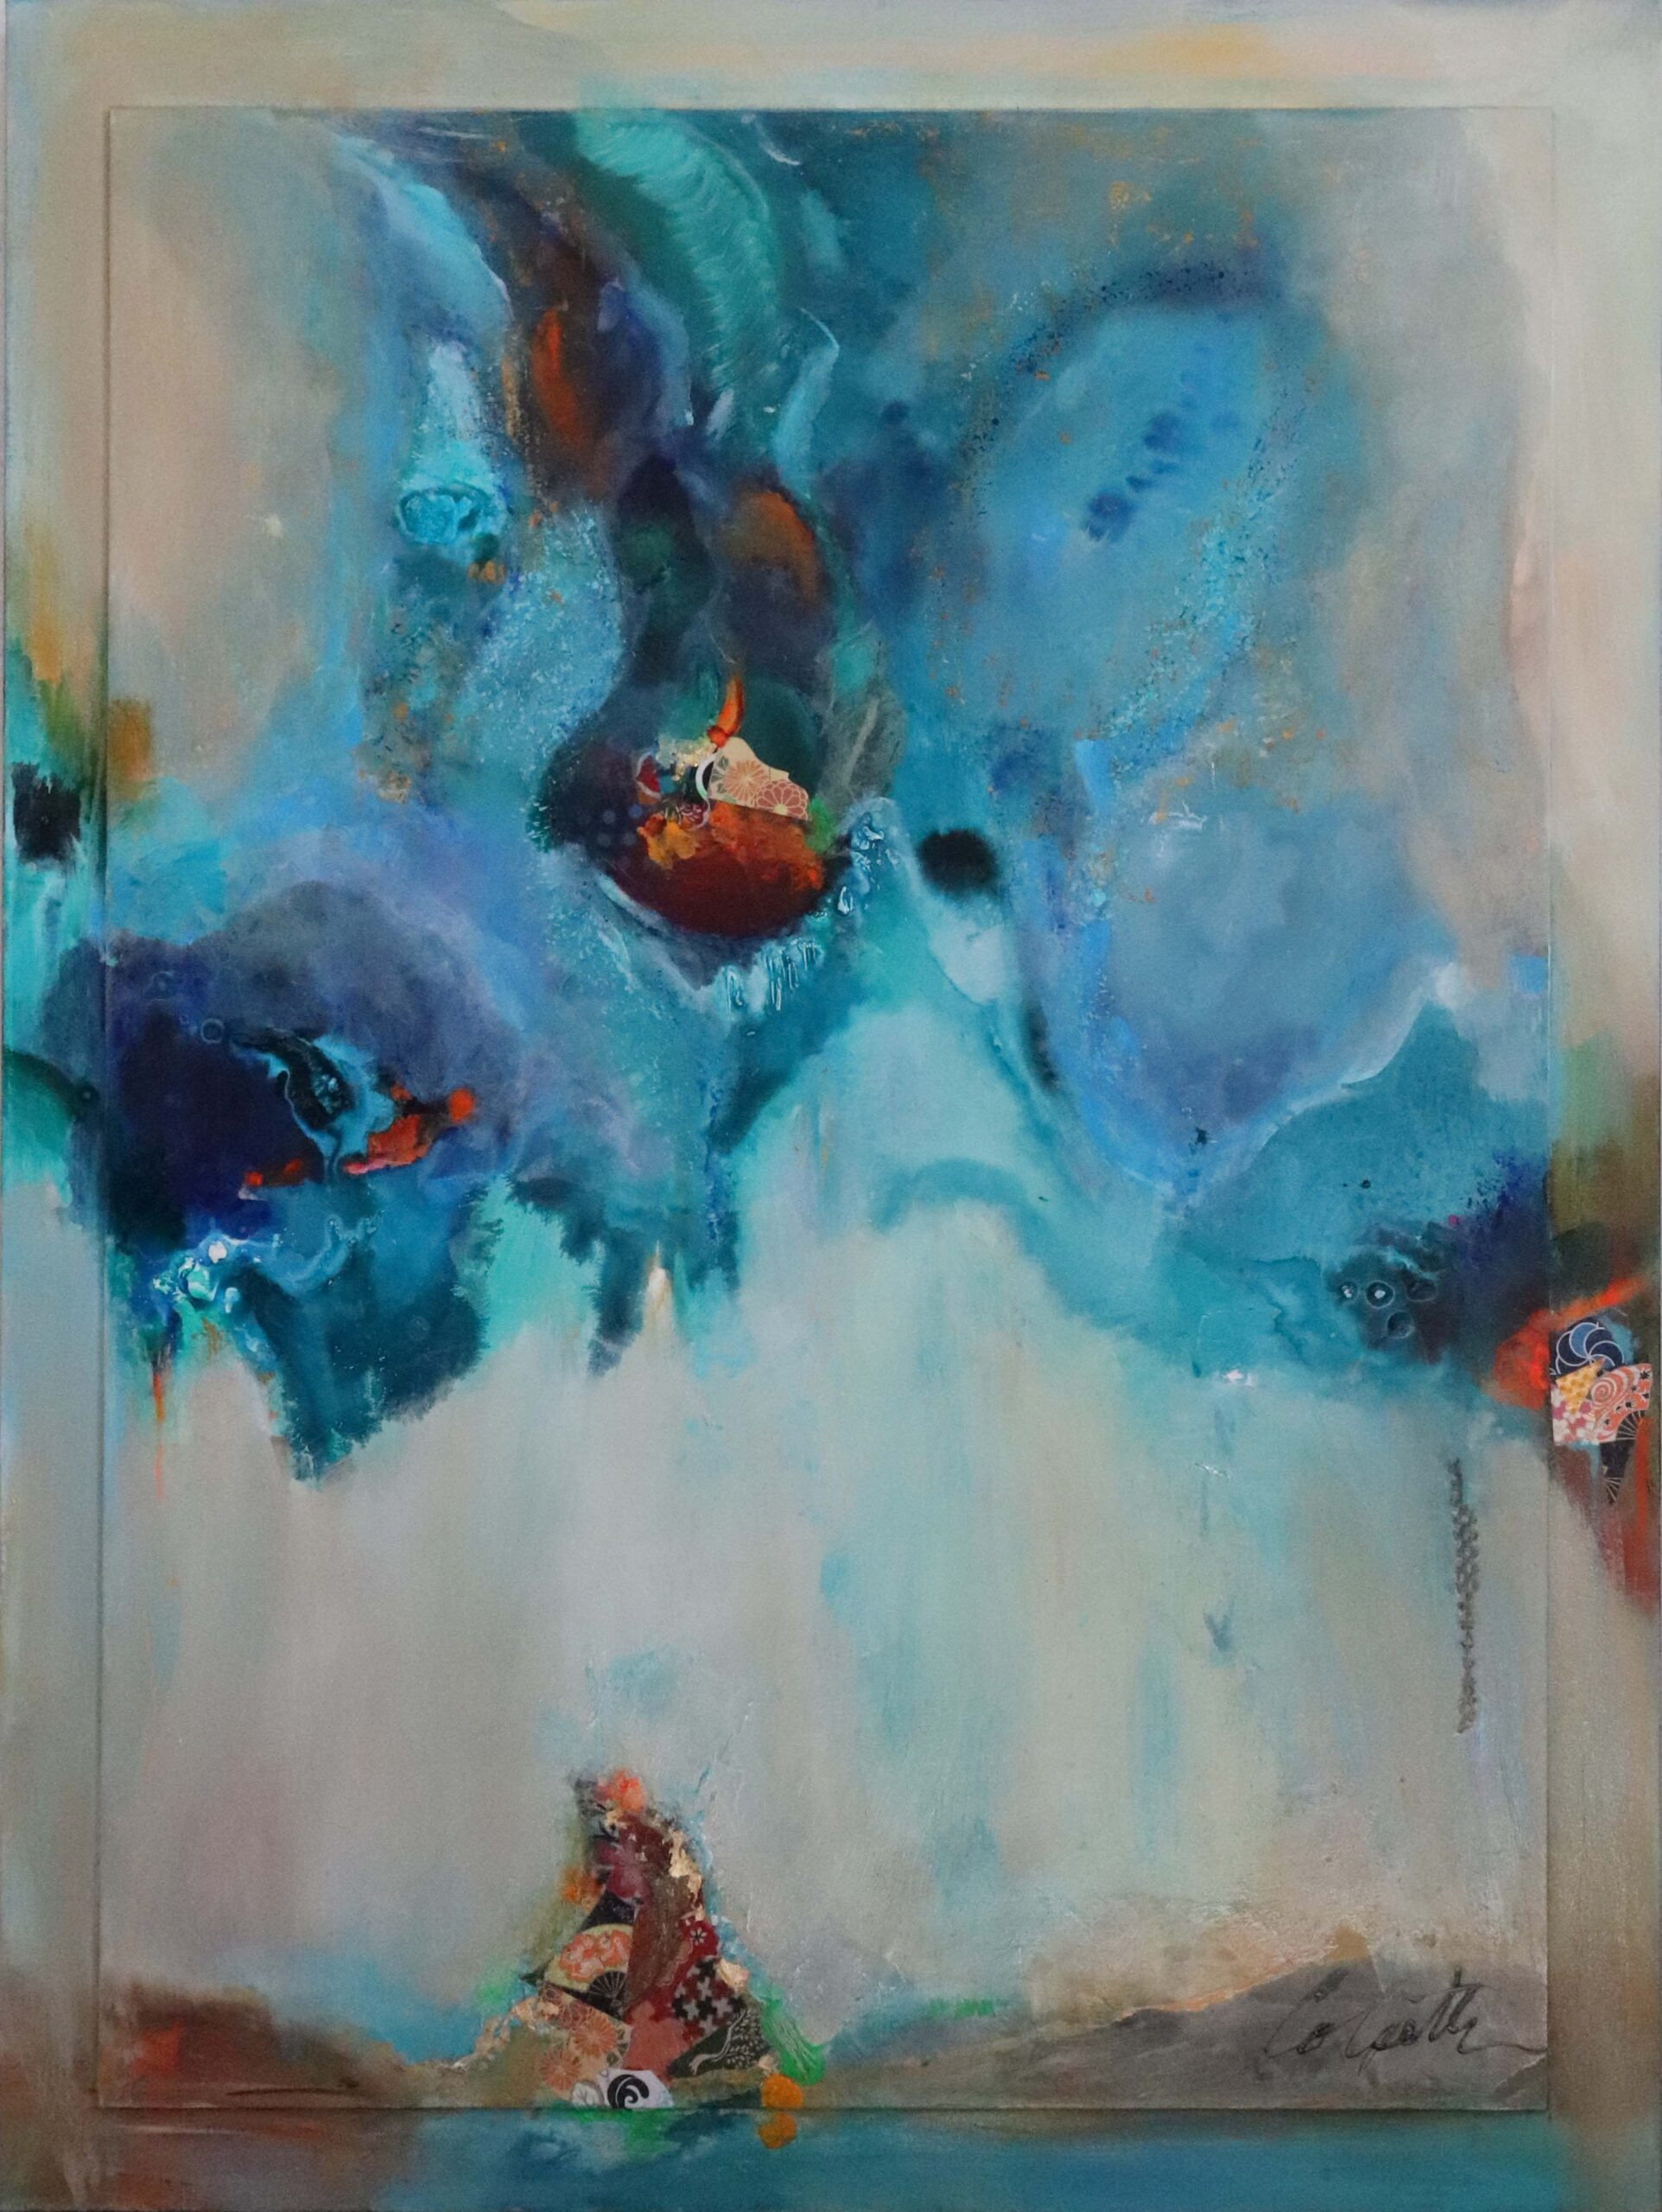 liquid acrylic painting, blue abstract art, Michael Colpitts paintings, Large Painting Mixed Media on Canvas Wall Art Abstract Simplistic, Mixed Media on Canvas, colorful abstract paintings, large abstract paintings for sale, bold paintings, modern paintings on canvas